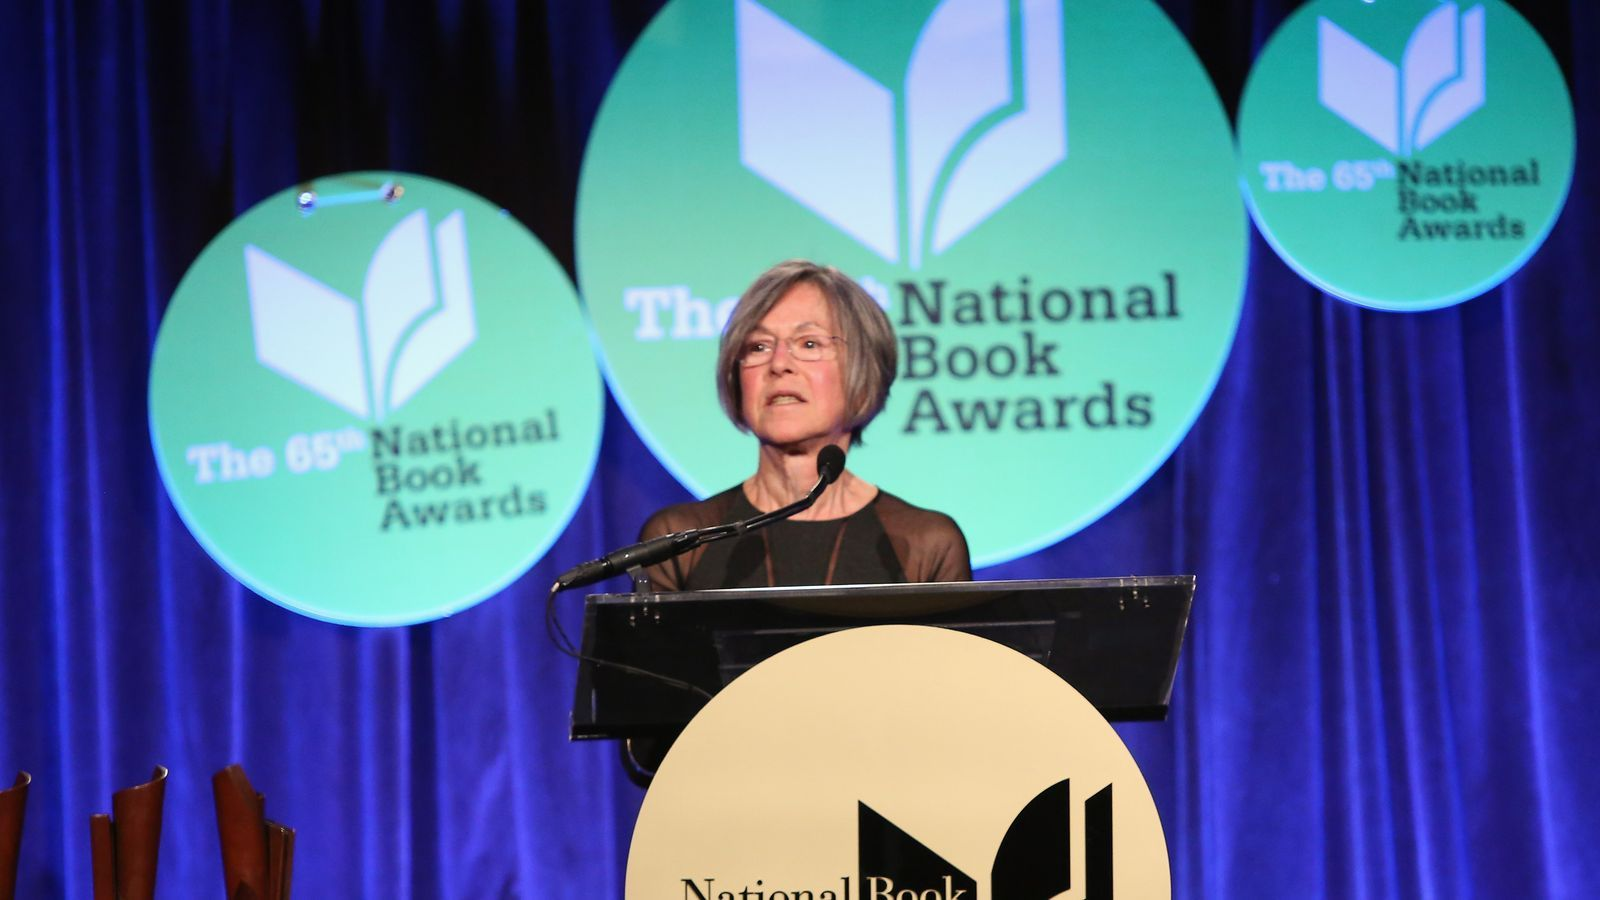 Louise Gluck assisteix als National Book Awards 2014 el novembre de 2014 a  Nova York.